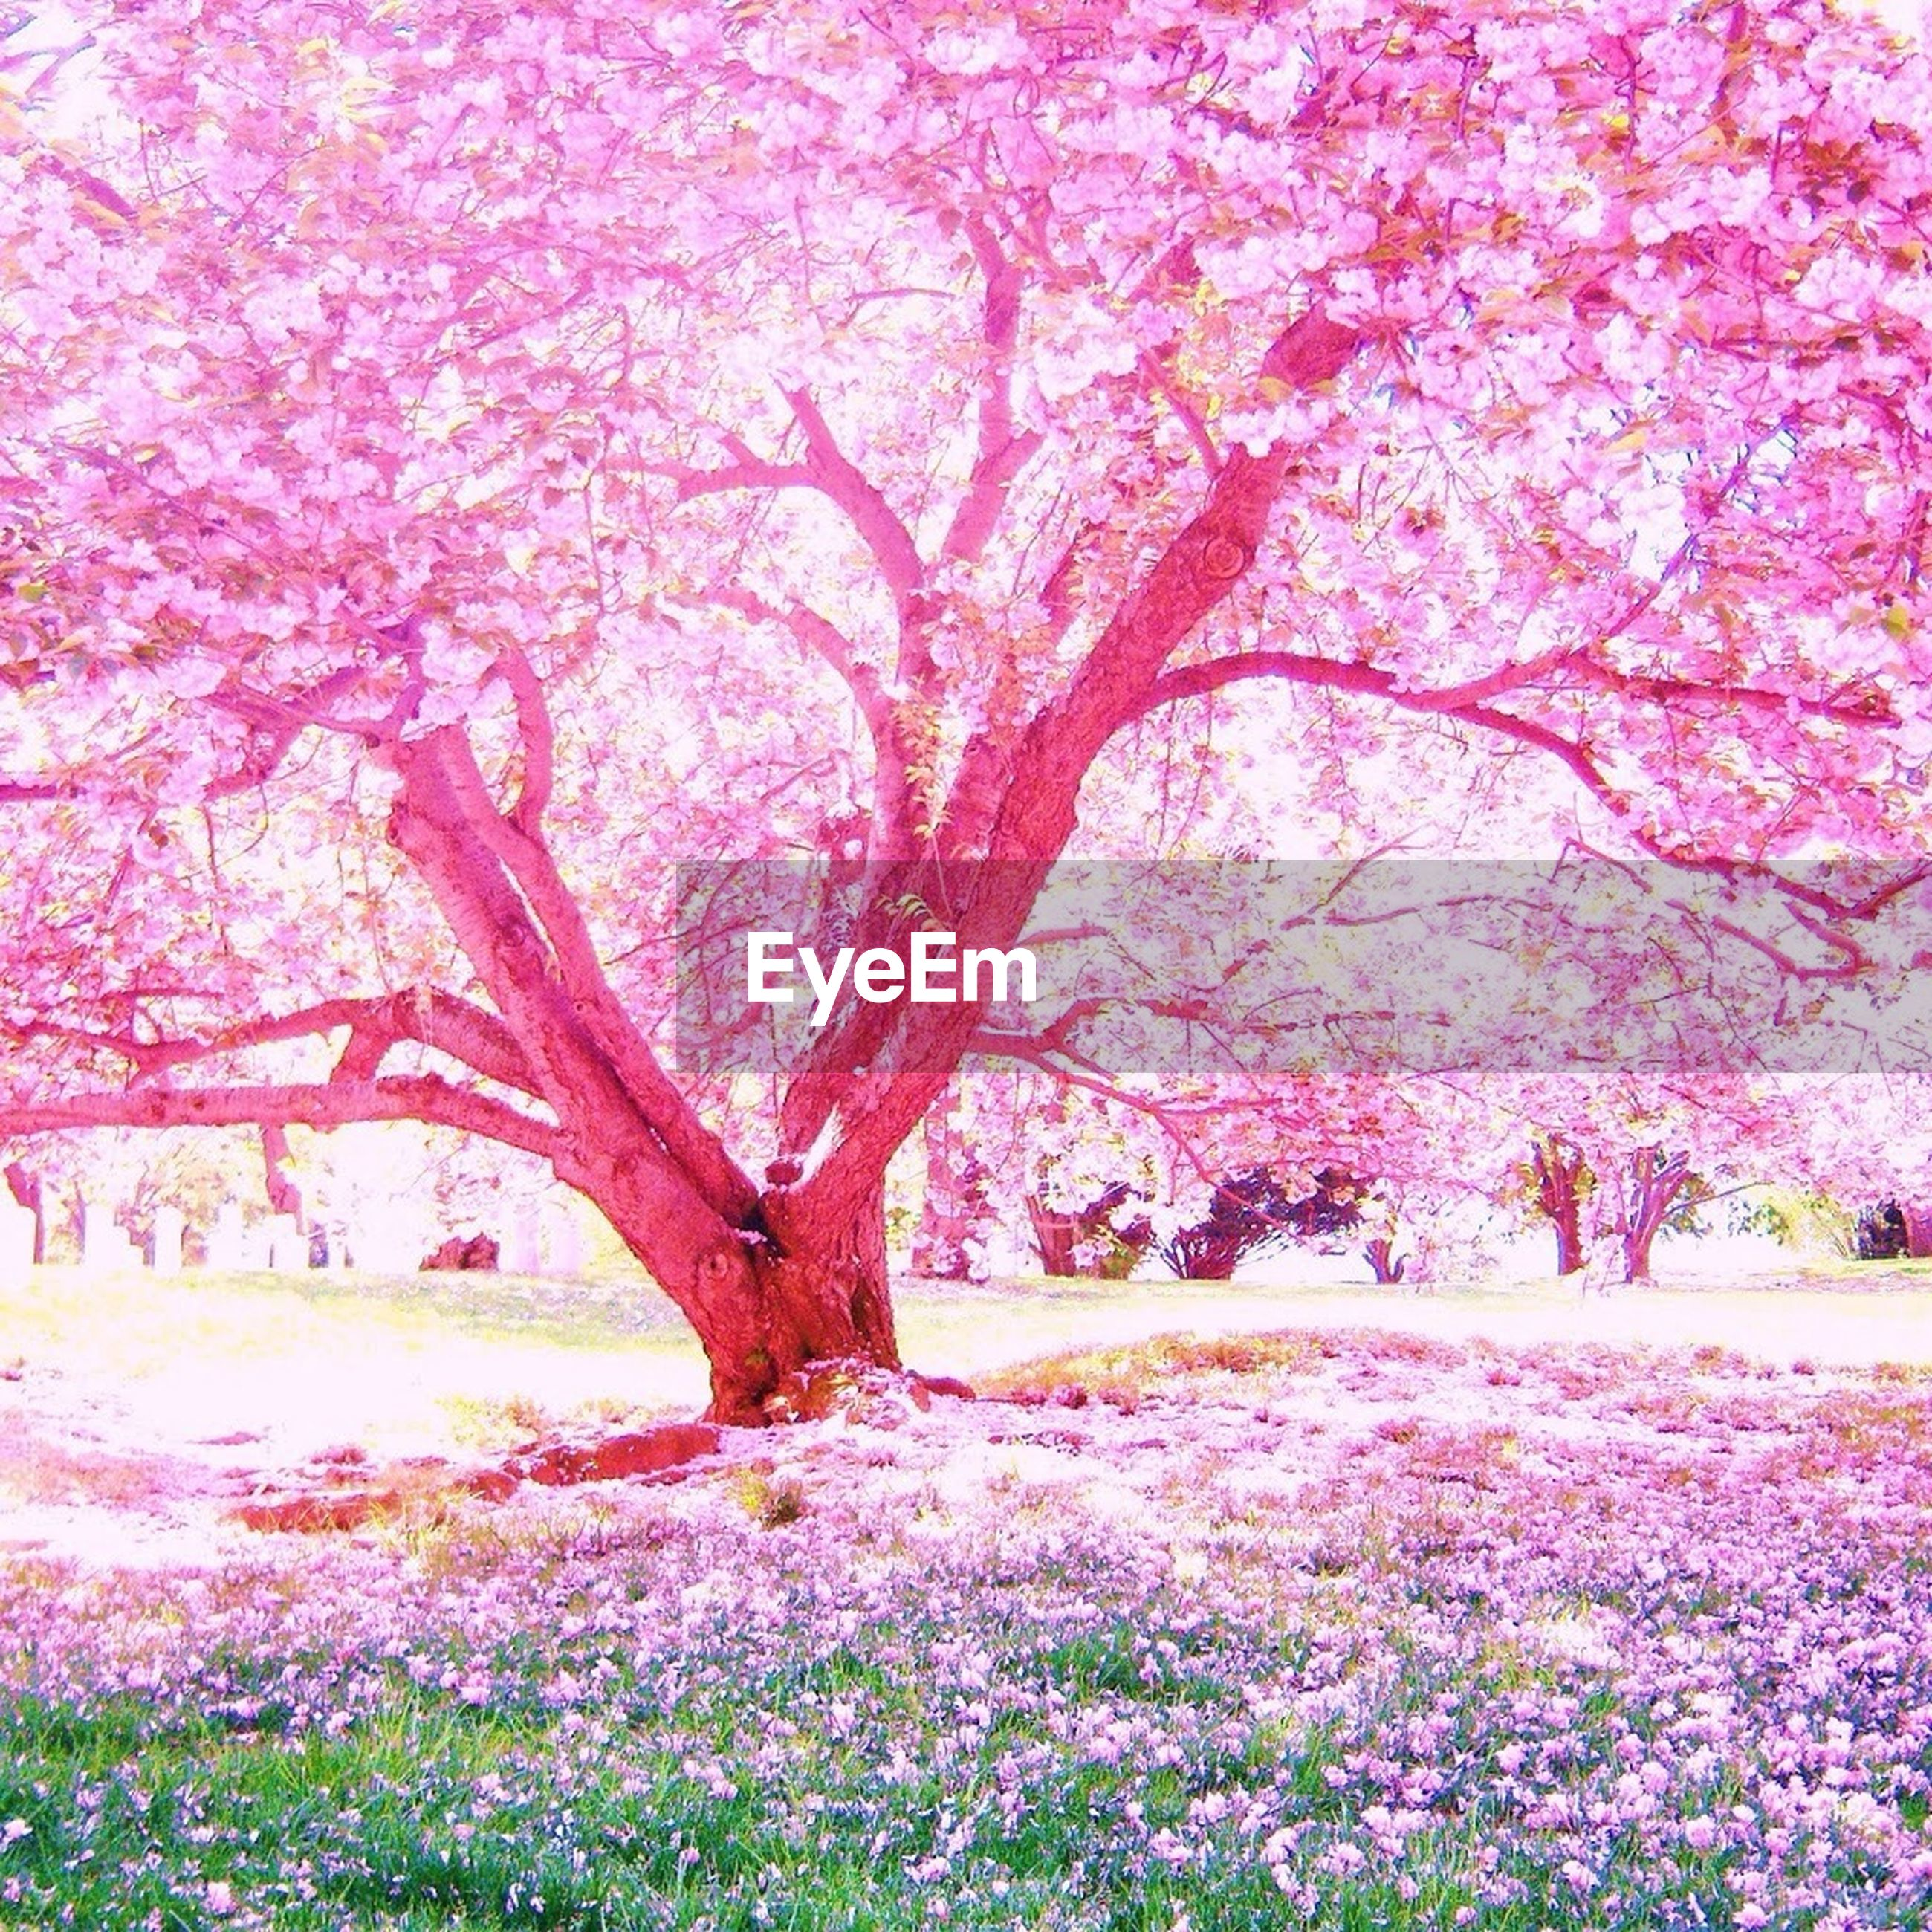 flower, tree, growth, pink color, beauty in nature, freshness, nature, branch, plant, fragility, tranquility, tranquil scene, in bloom, blossom, park - man made space, sunlight, scenics, blooming, day, outdoors